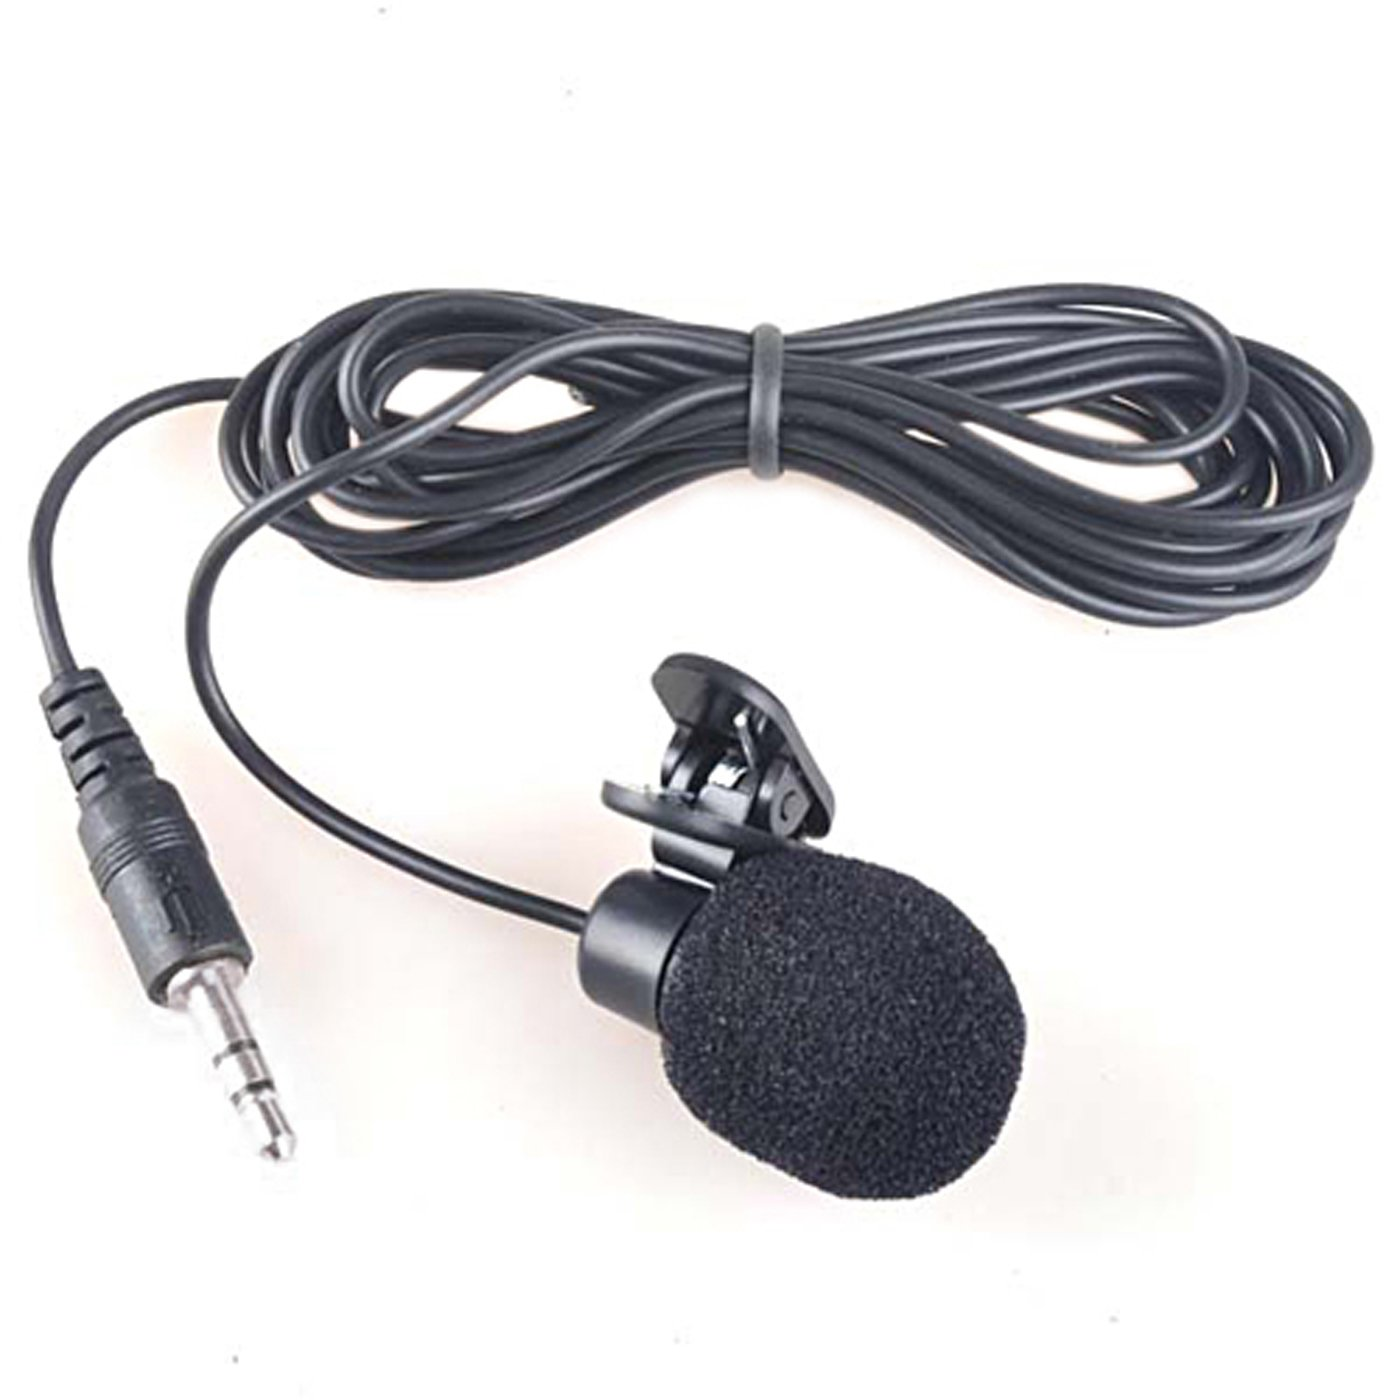 HDE 2 Pack 3.5mm Lavalier Microphone Mini Hands Free Clip On Lapel Mic for Smartphones Cameras Recorders PCs and More HDE-*Y07X2